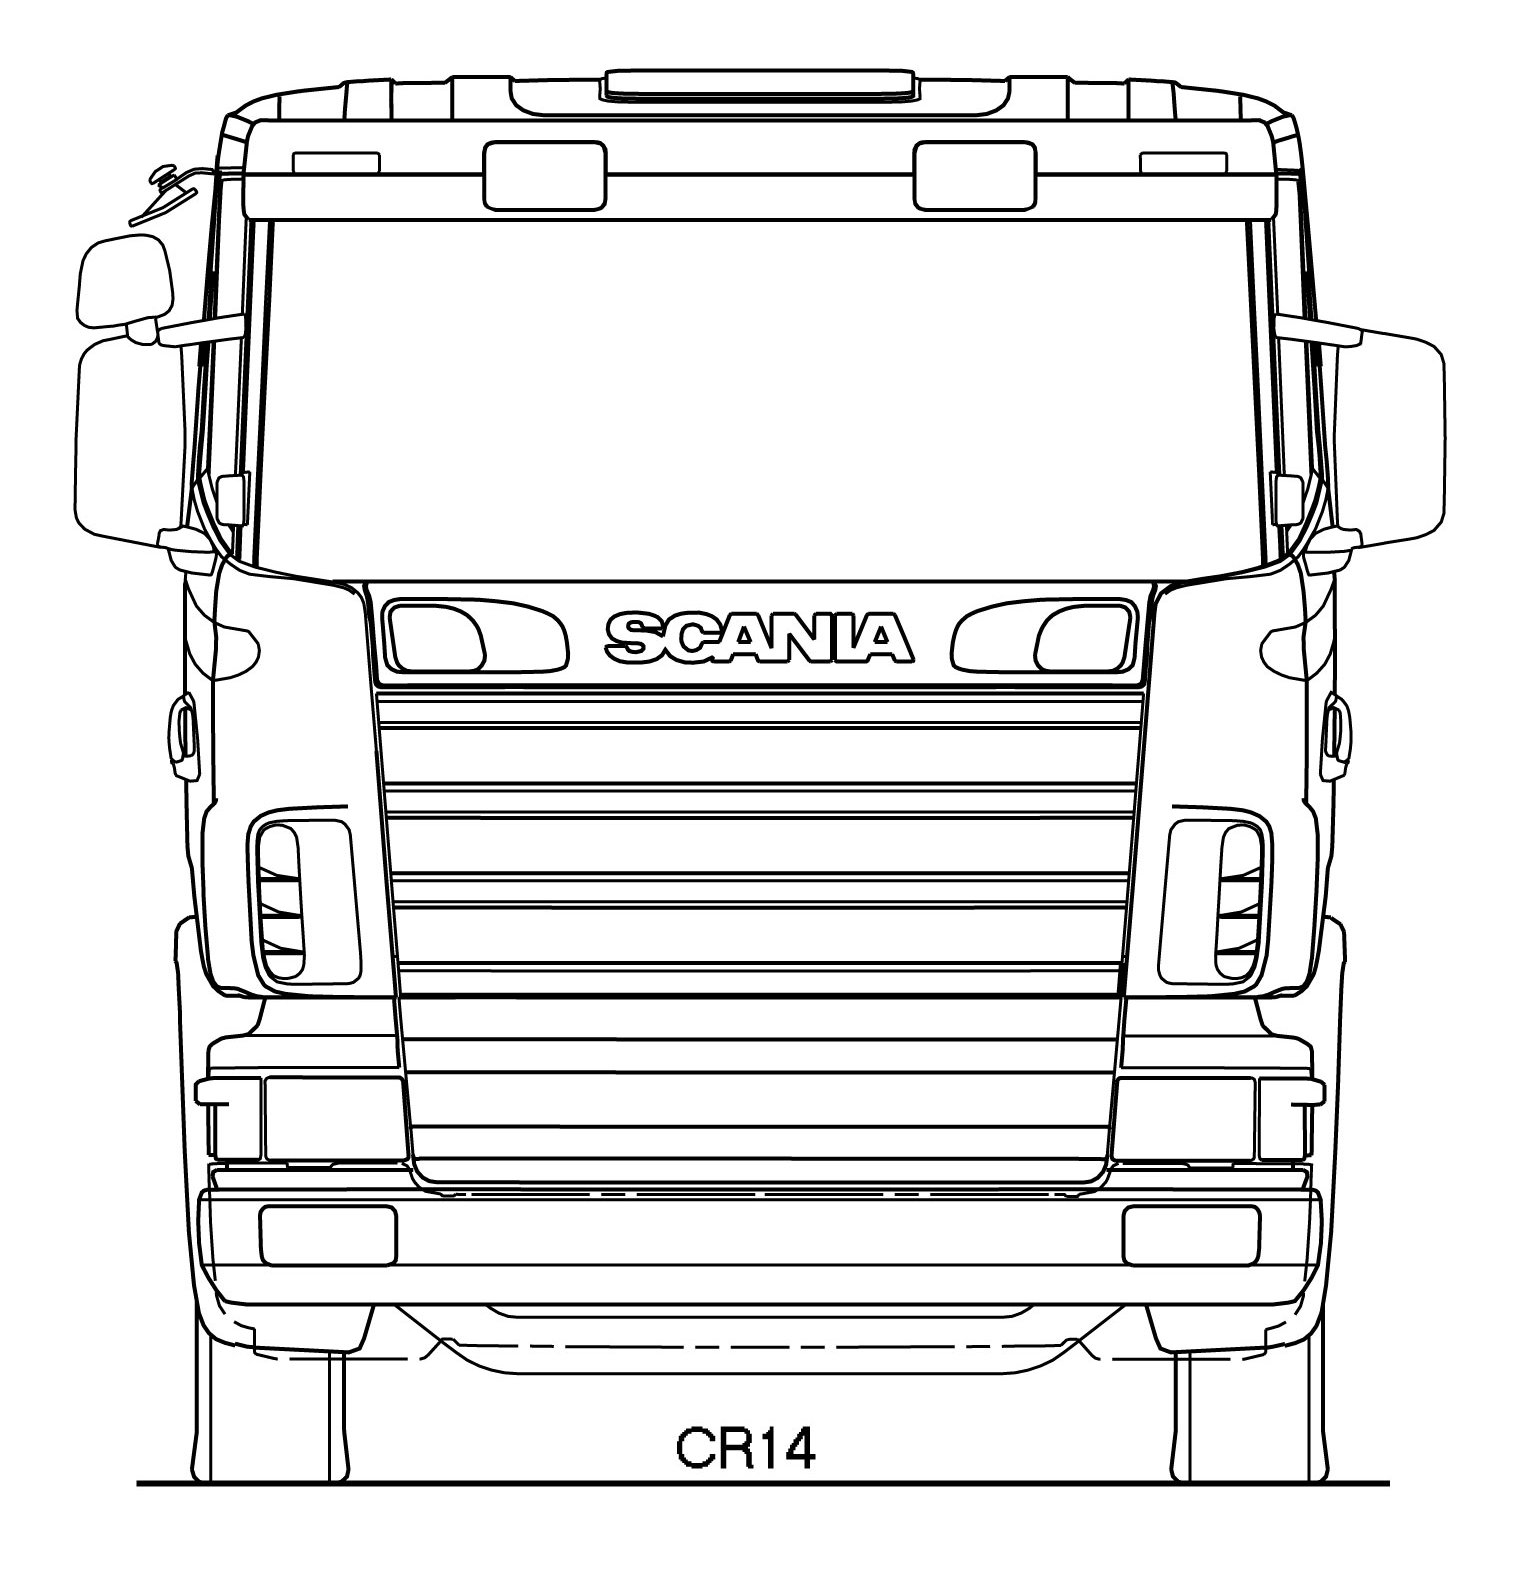 scania r series blueprint download free blueprint for 3d modeling semi truck silhouette vector semi truck vector free